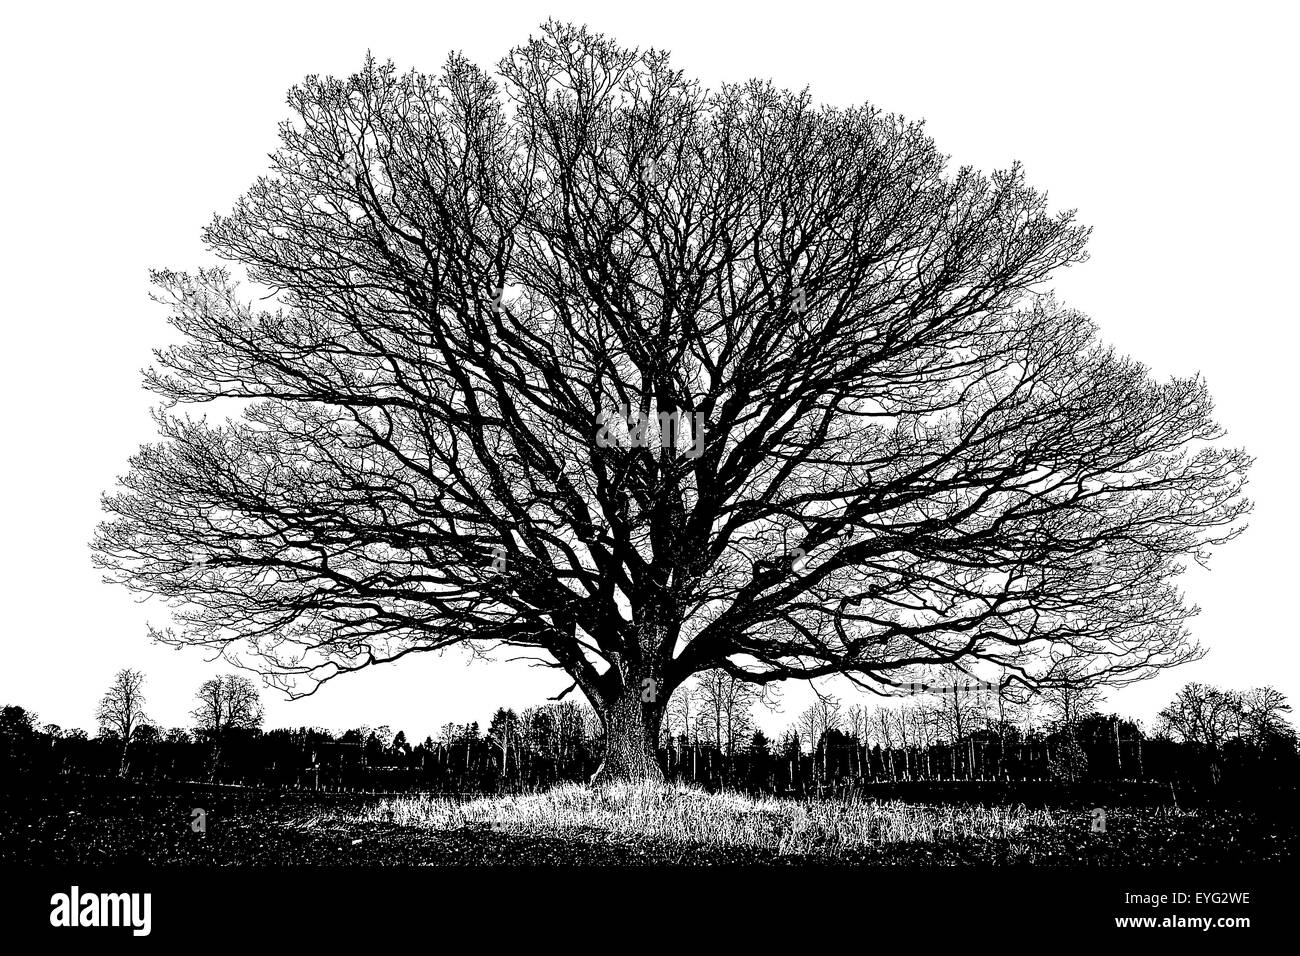 Big old oak tree with winter leafless branches in silhouette as a pen and ink, black and white, artistic illustration Stock Photo